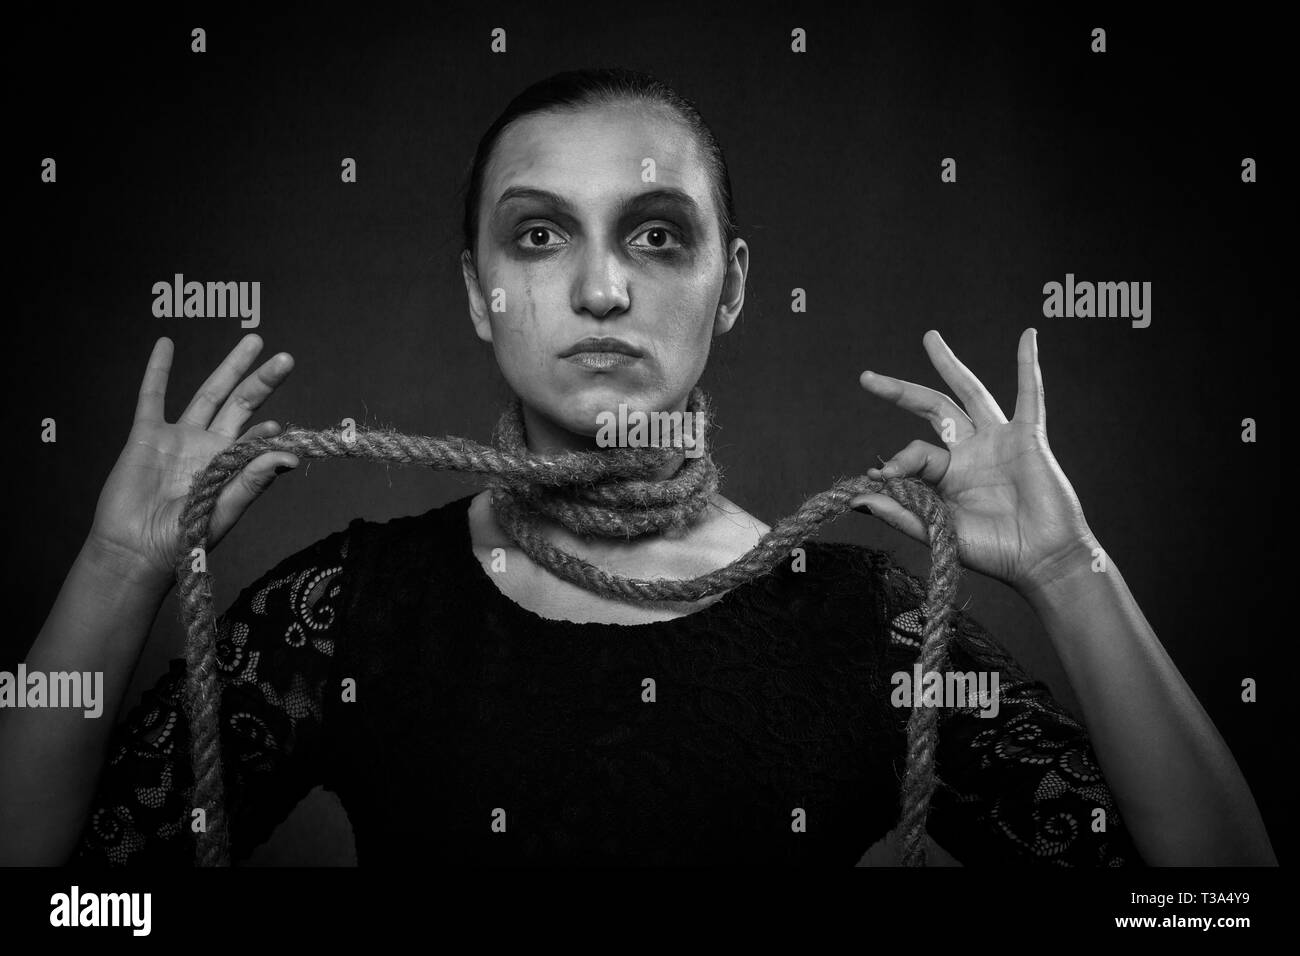 serious woman with rope on neck at black background looking at camera - Stock Image